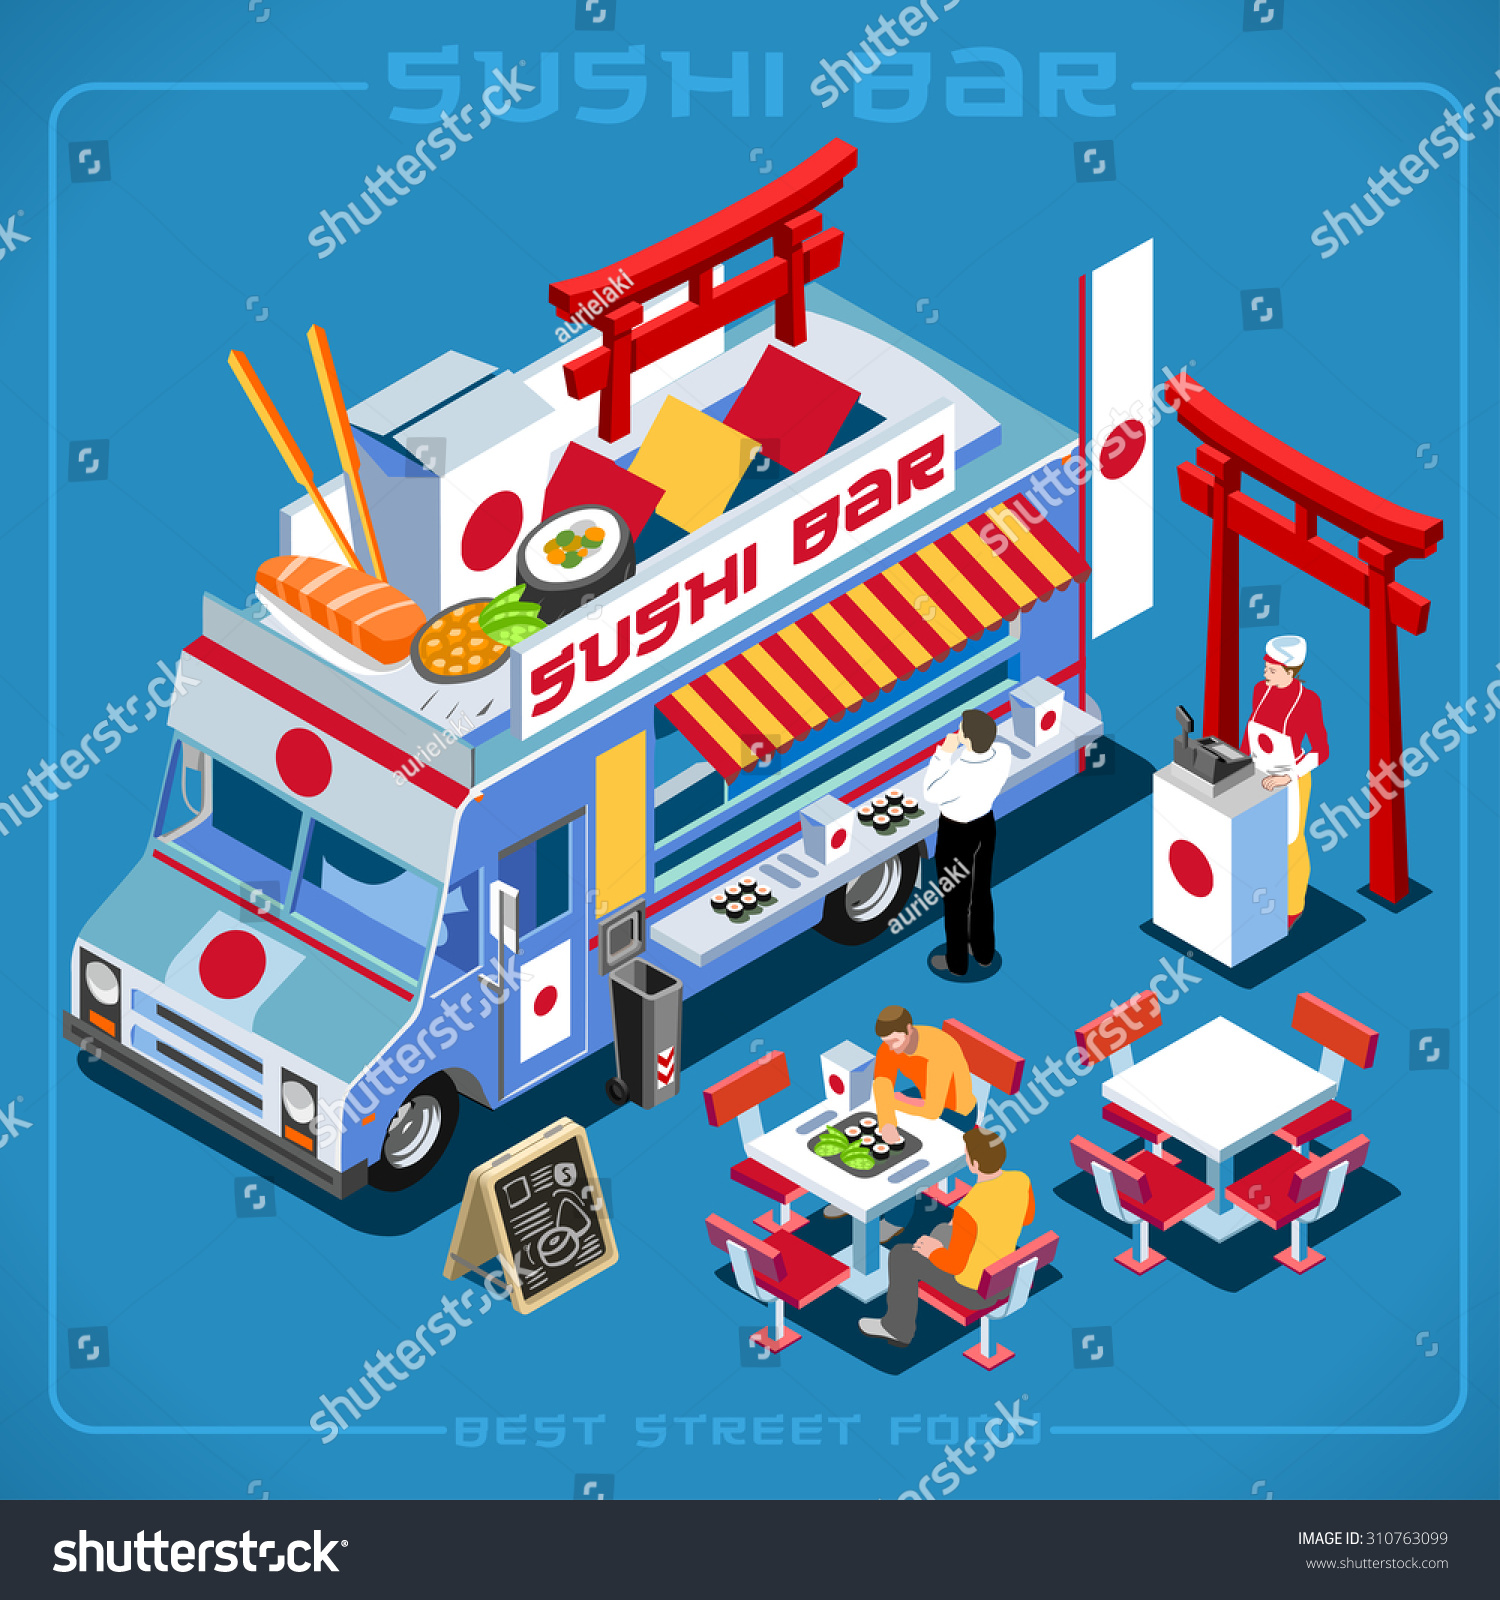 Japanese Cuisine Food Truck Royalty Free Japanese Wok Wasabi Sushi Food Truck